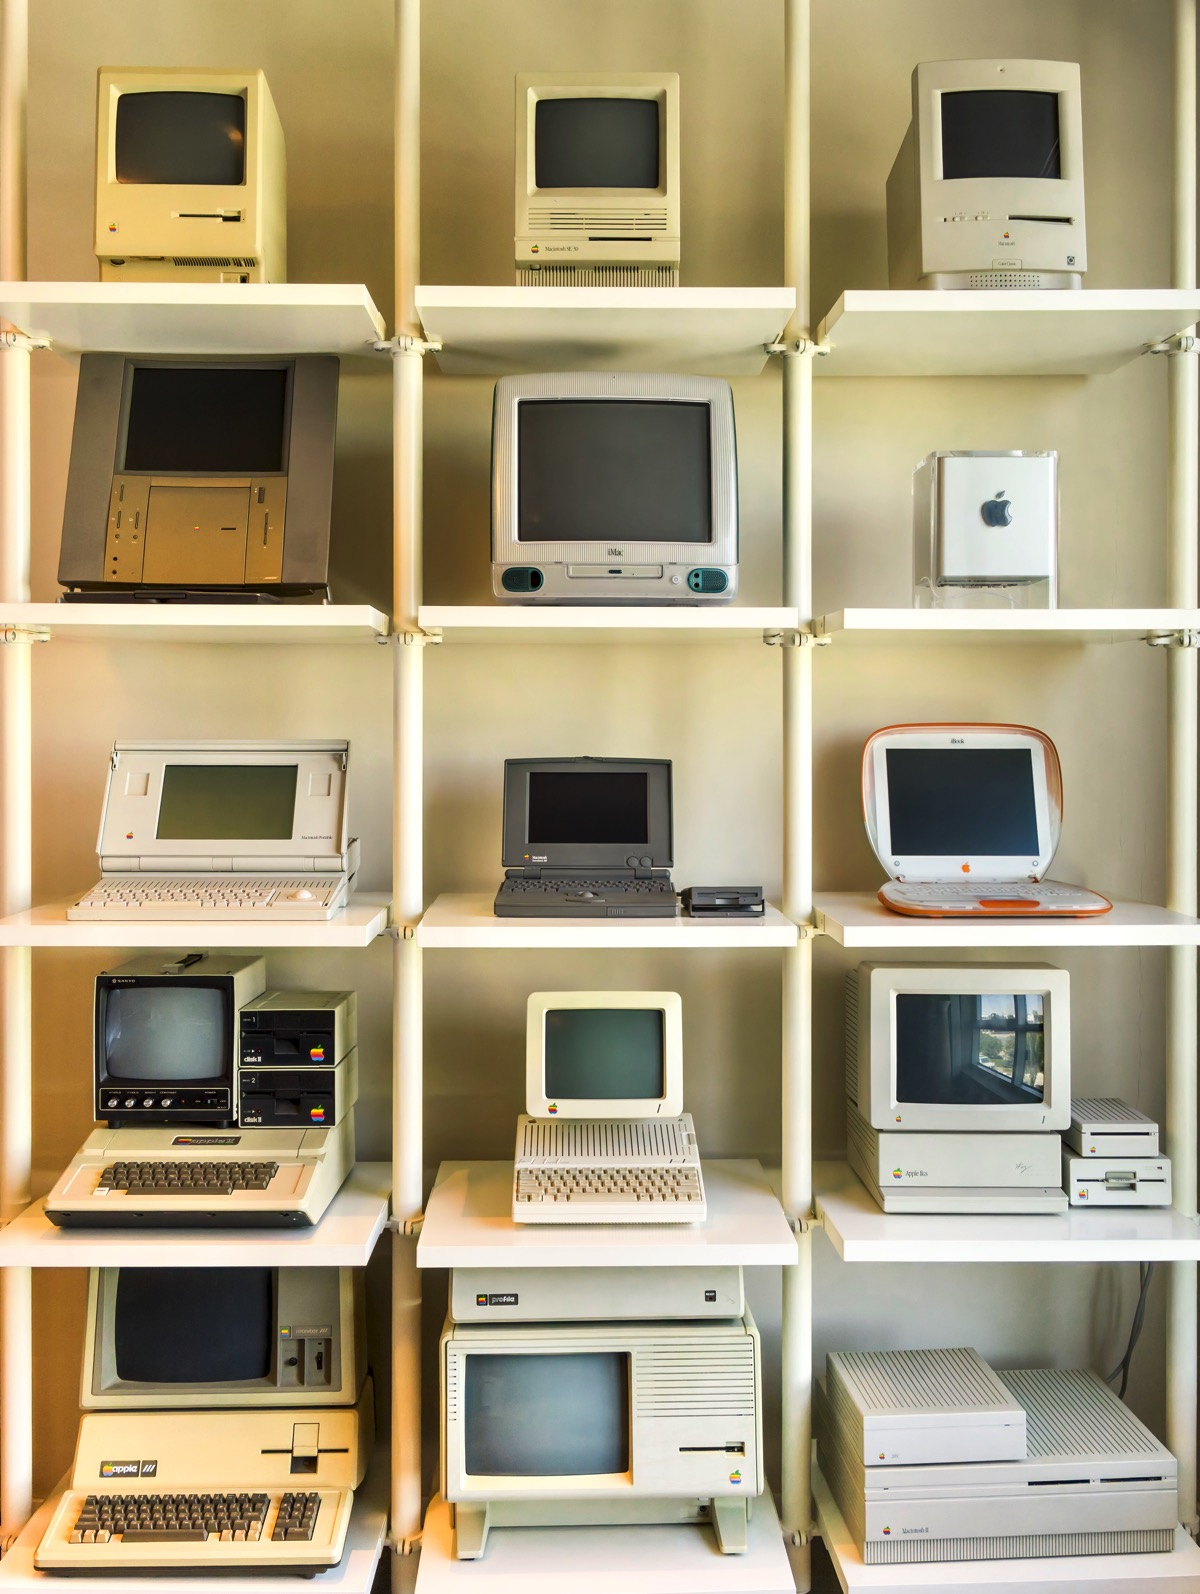 Jimmy Grewal's vintage Apple computer collection